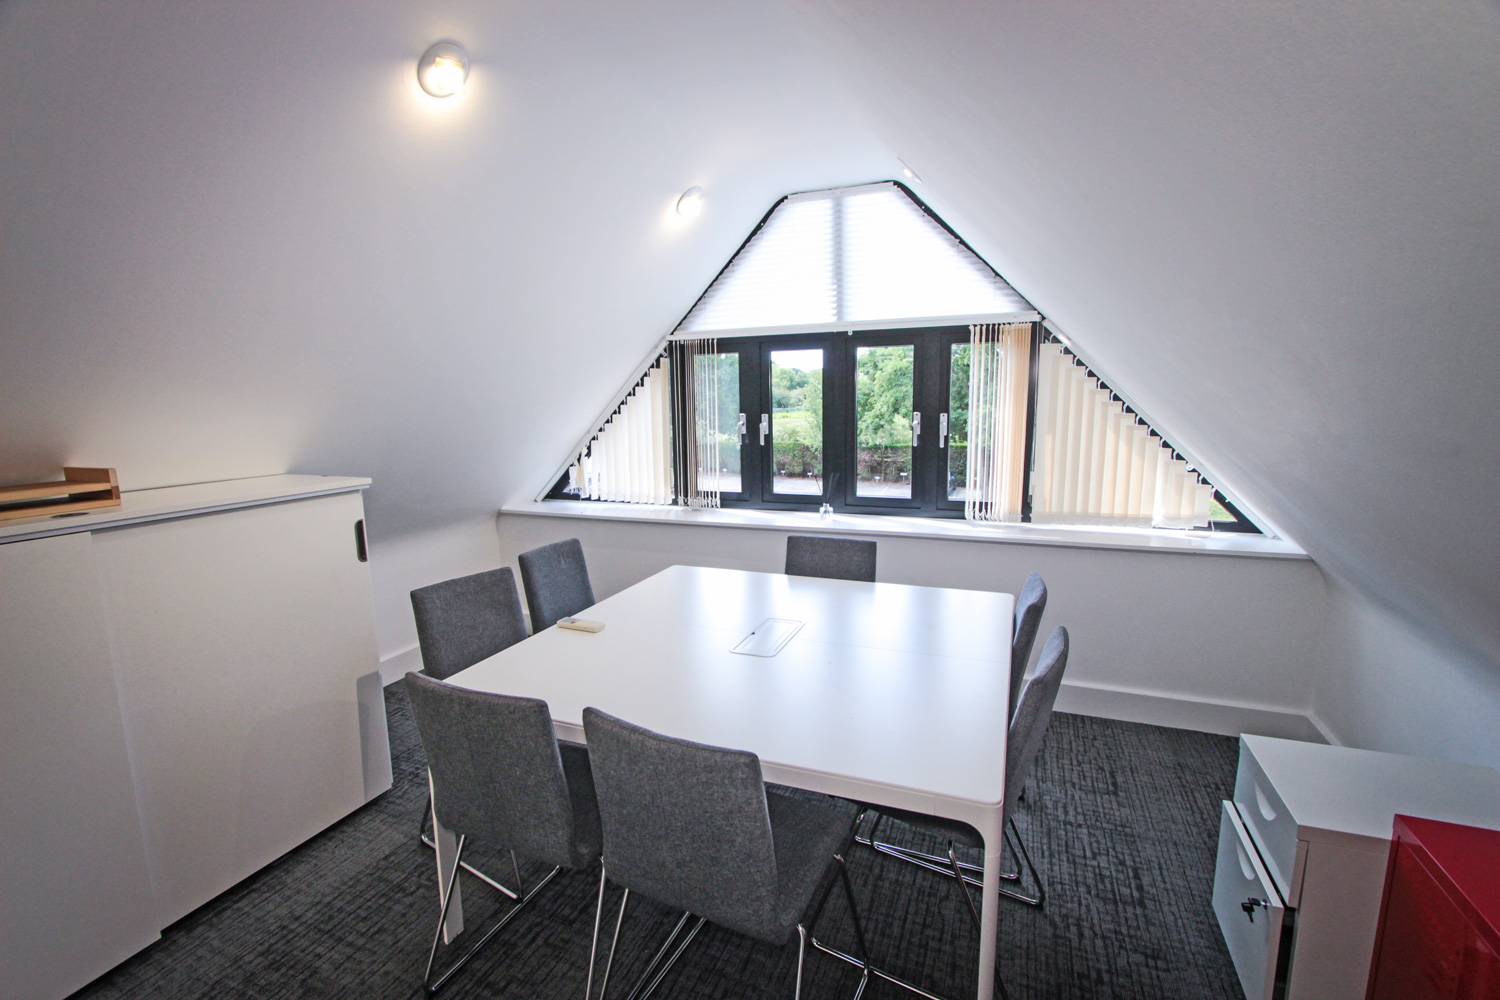 Grade A office conference meeting space at Tanshire Park Surrey Business Park - To Rent in Oak House